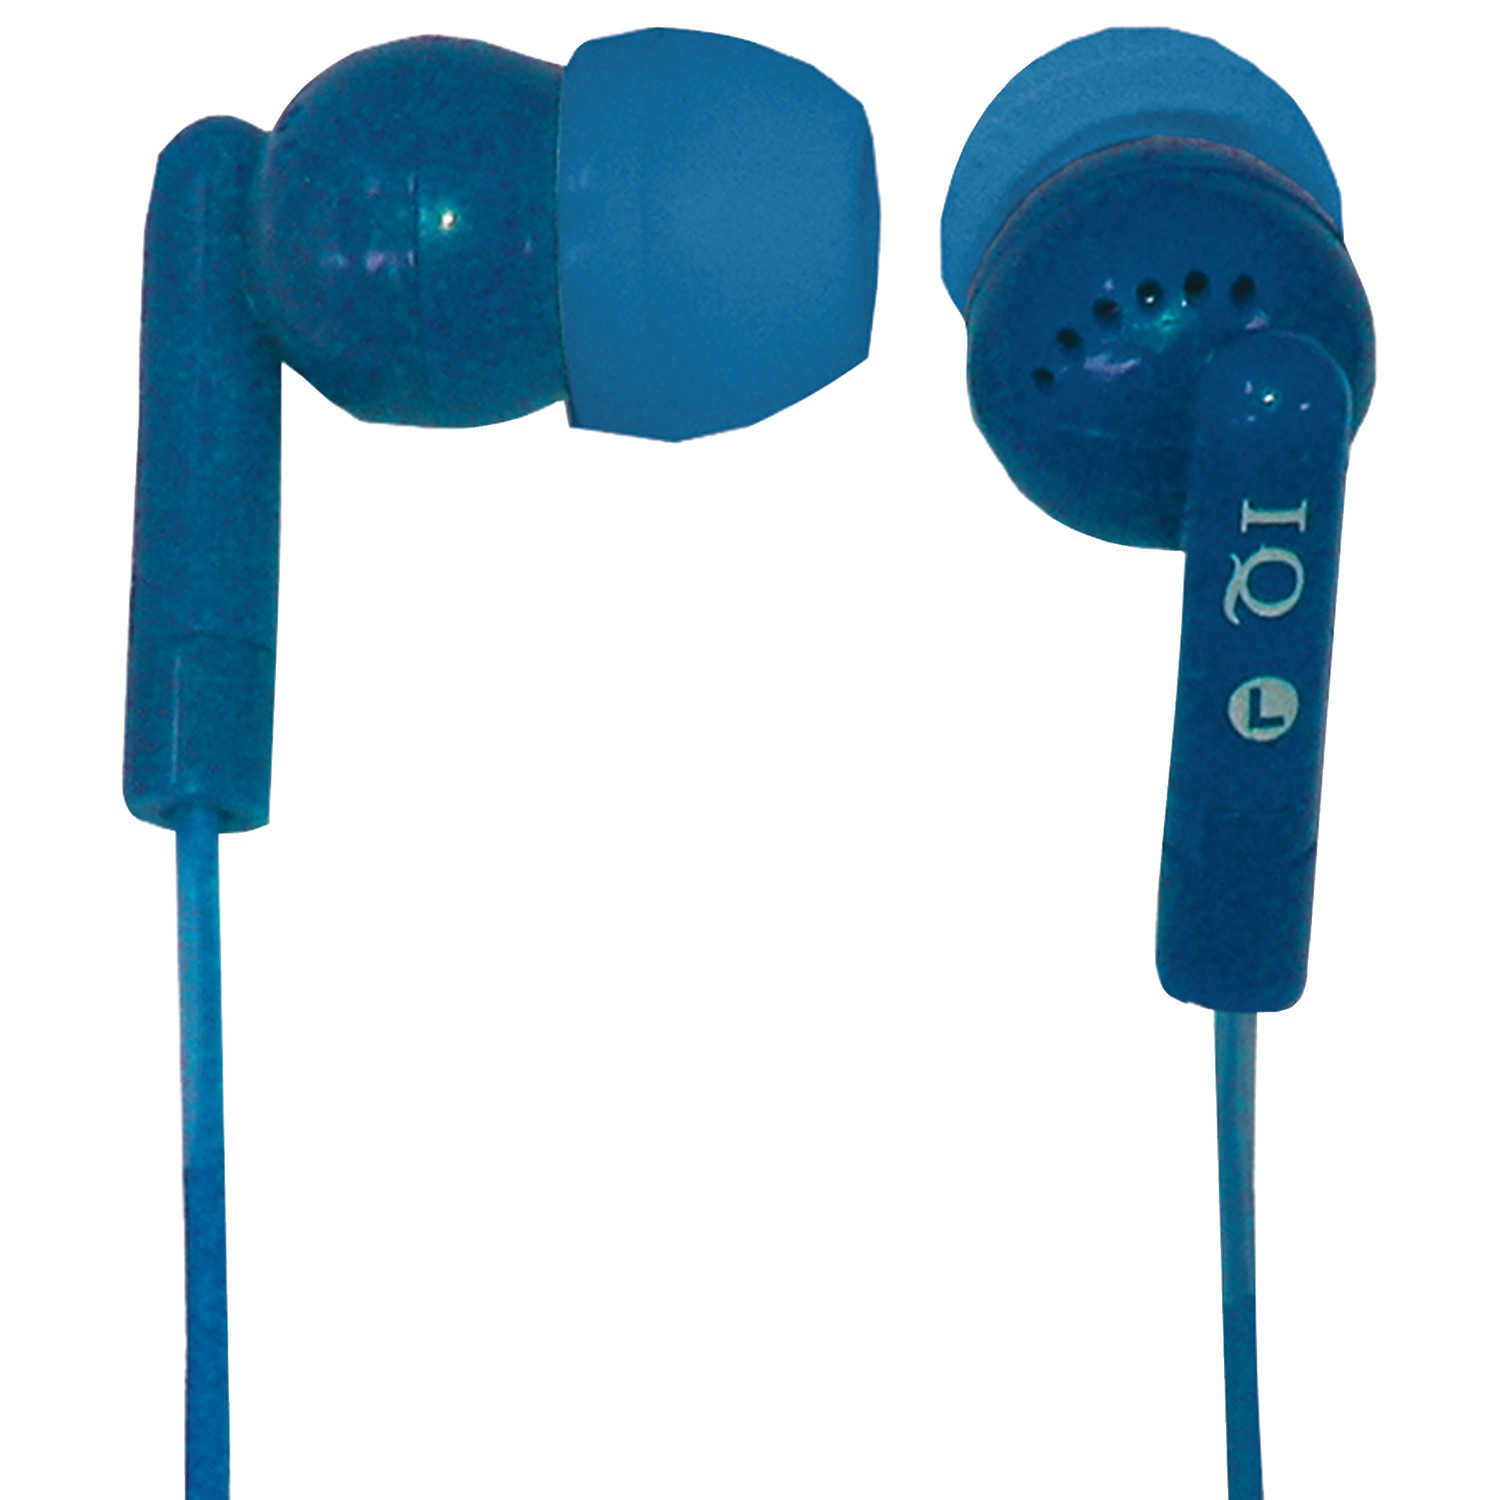 Supersonic Iq-106 Blue Porockz Stereo Earphones (blue)